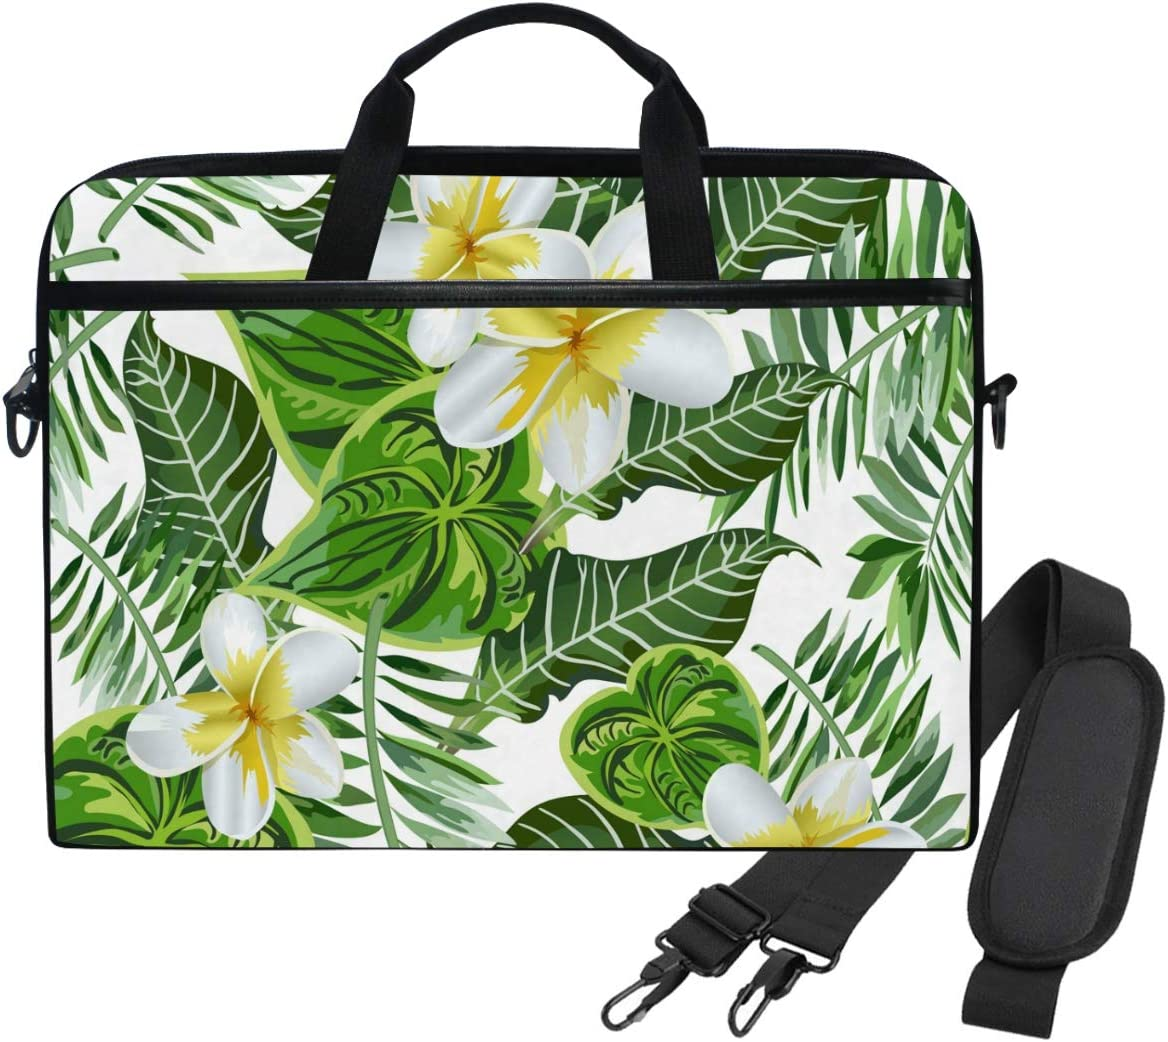 Pattern with Tropical Plants and Flamingos Laptop Case Canvas Pattern Briefcase Sleeve Laptop Shoulder Messenger Bag Case Sleeve for 13.4-14.5 inch Laptop Briefcase